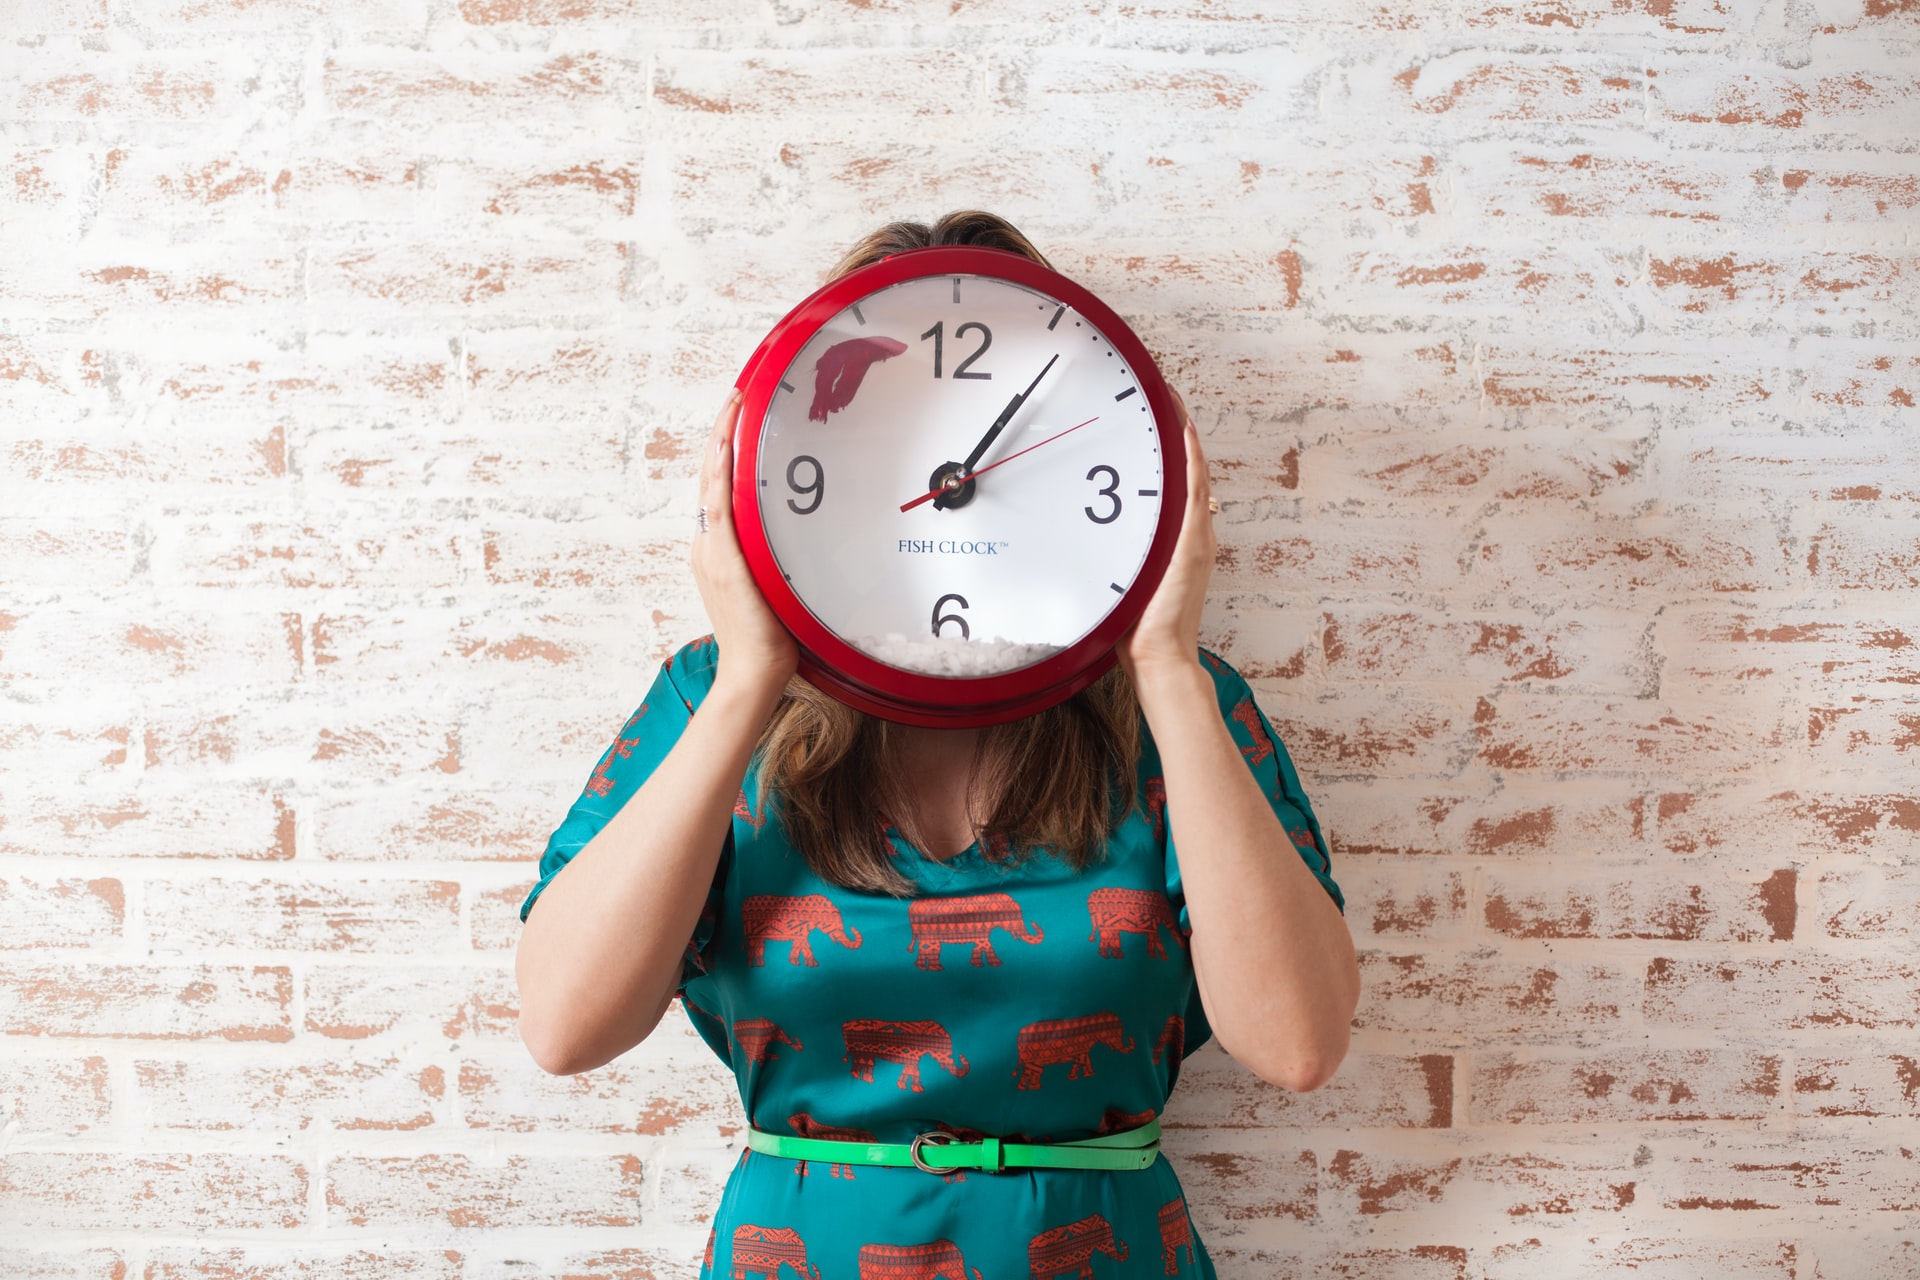 Residency Application Timeline and Checklist